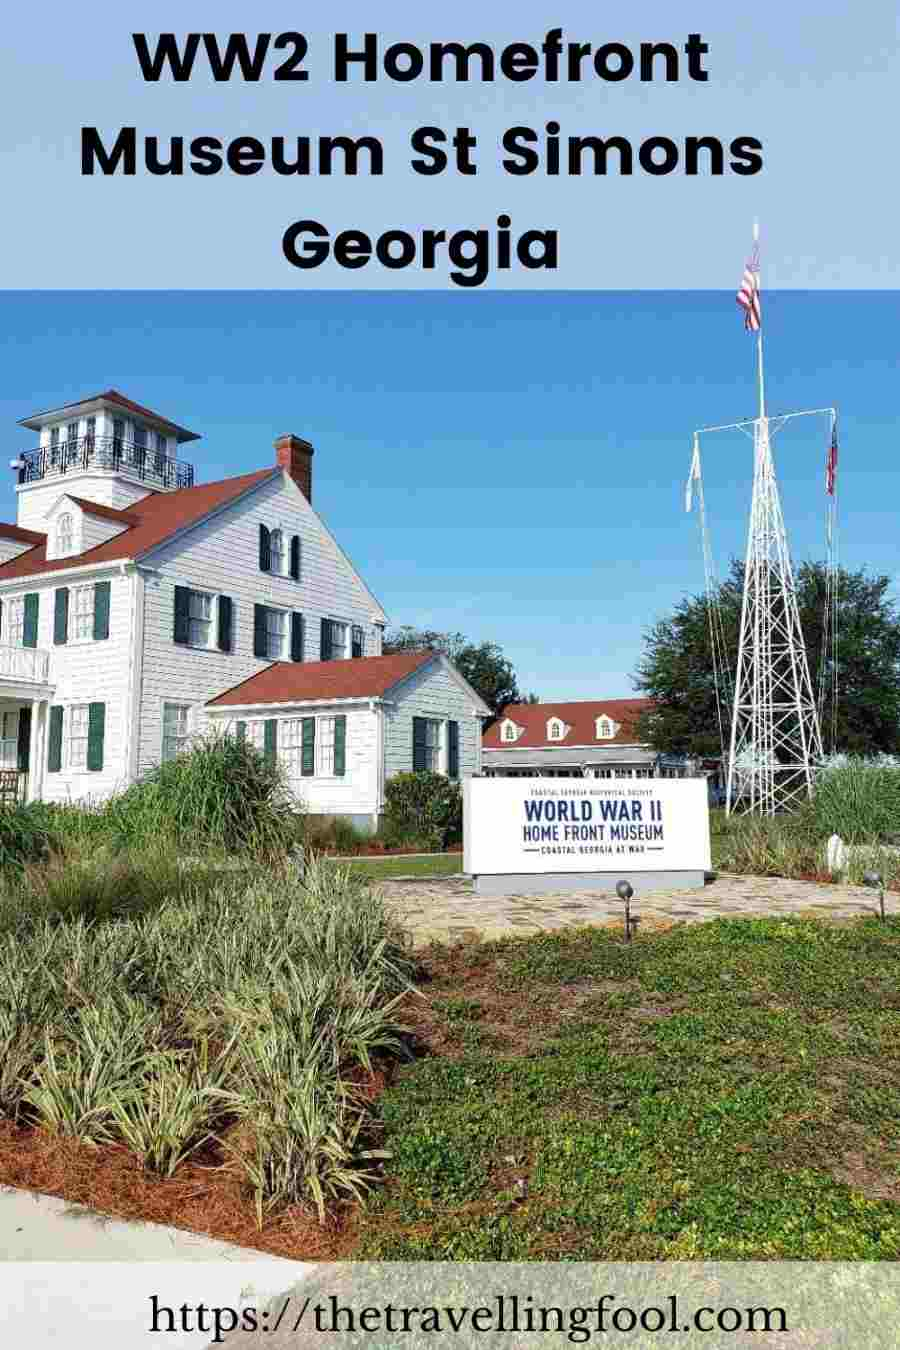 World War II Home Front Museum and the Role Coastal Georgia Played in the War